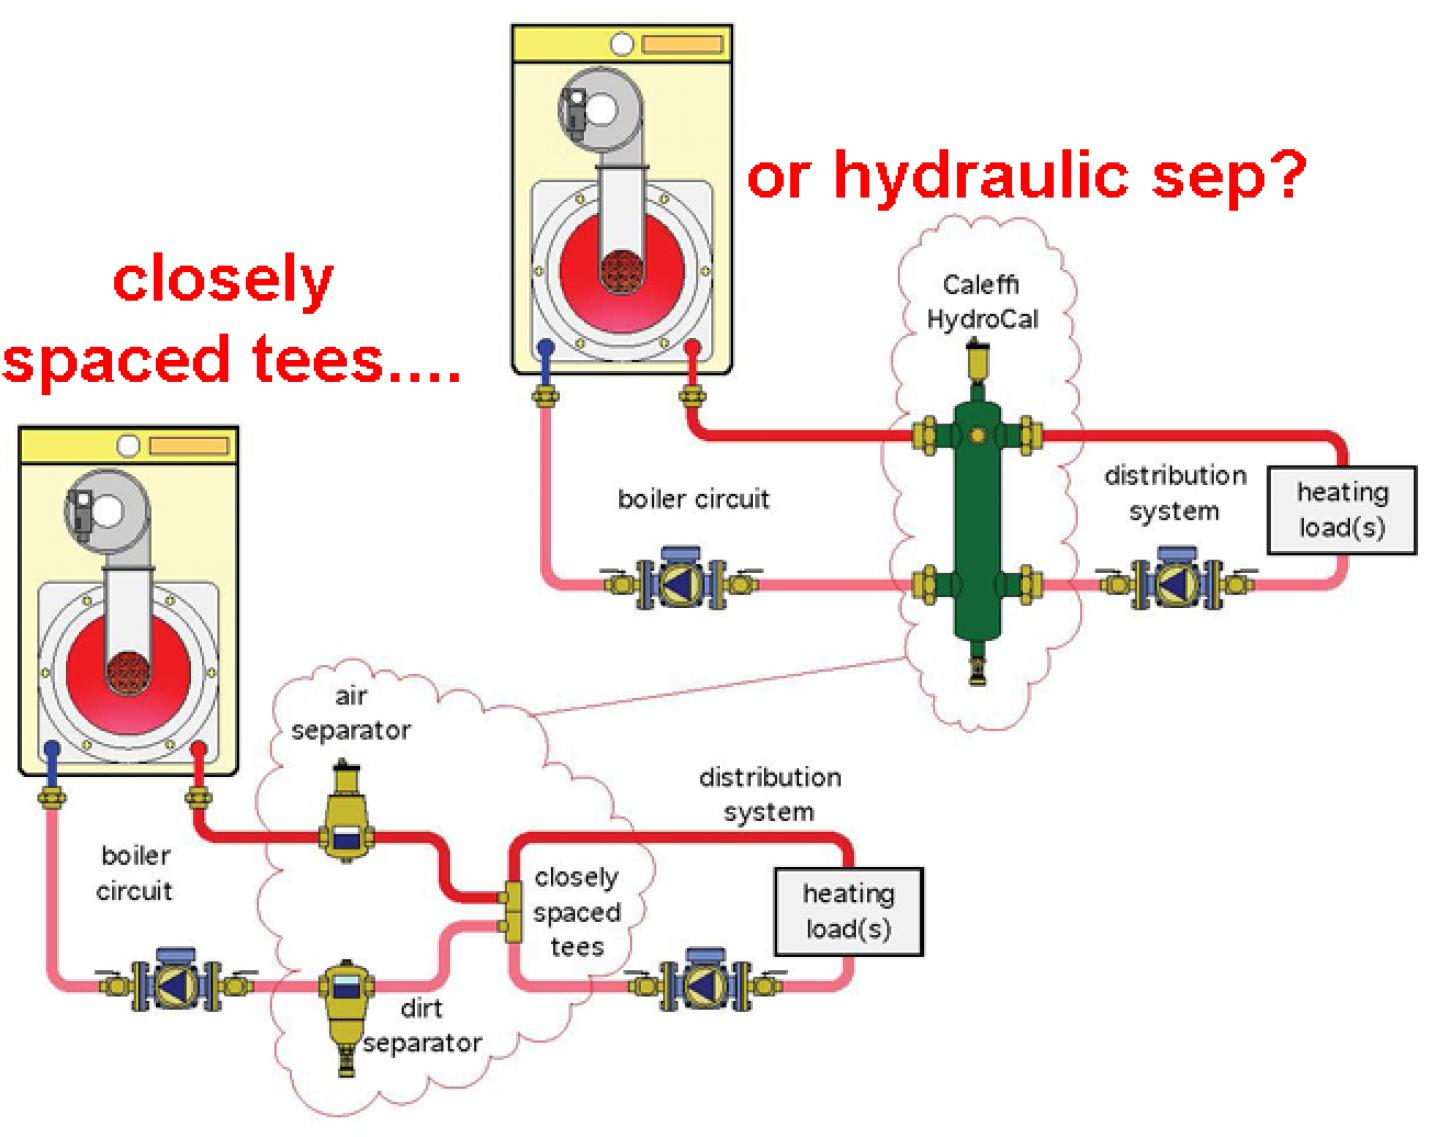 Hydraulic Separation, closely spaced tees